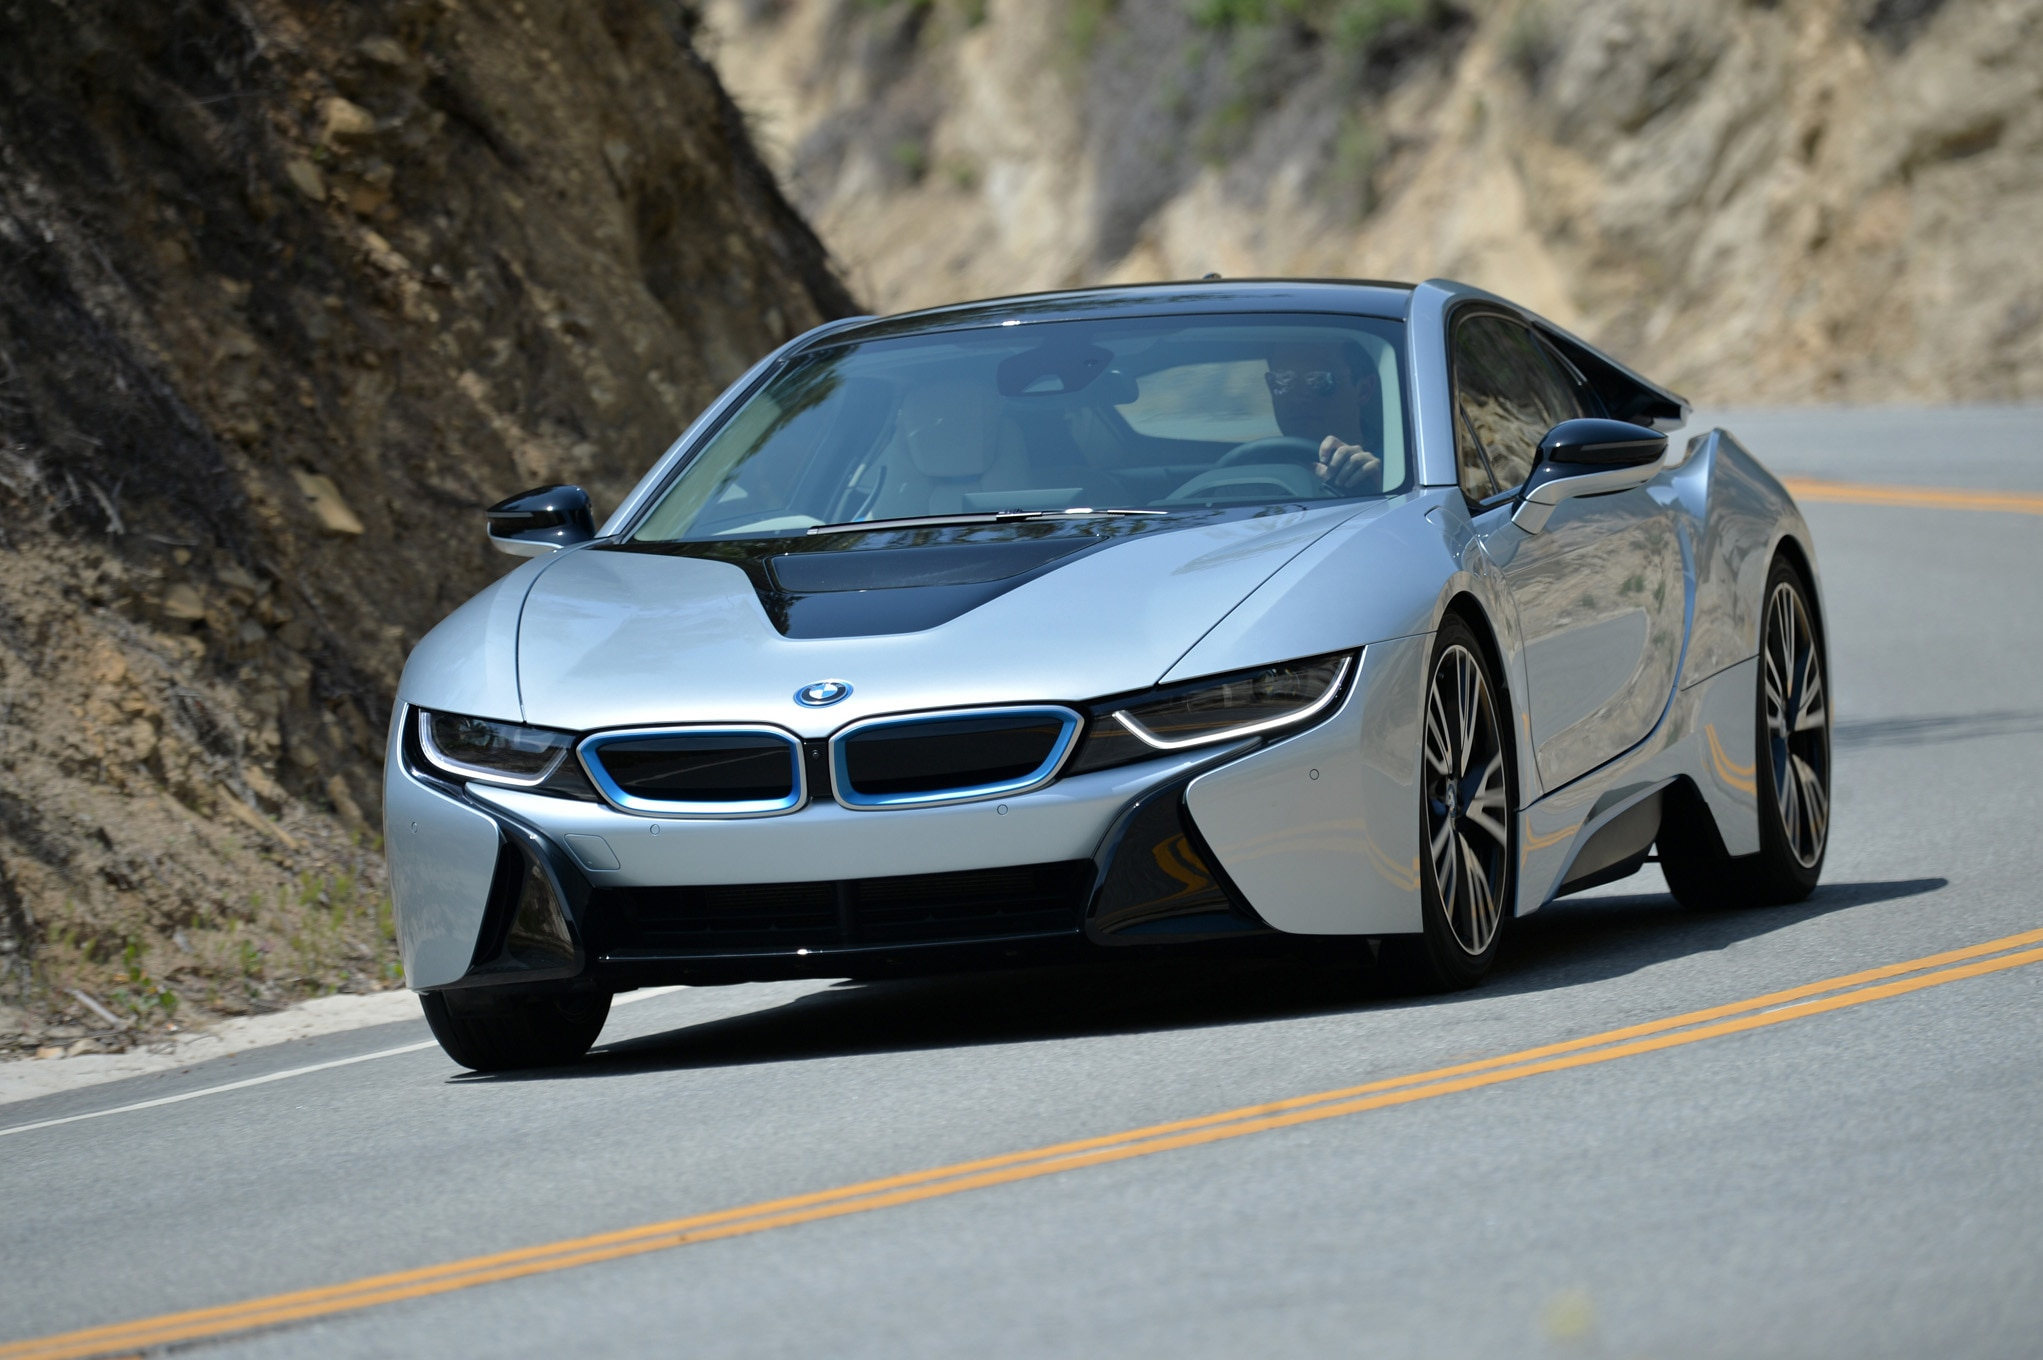 wallpaper speed the news day cars car charging bmw la top of